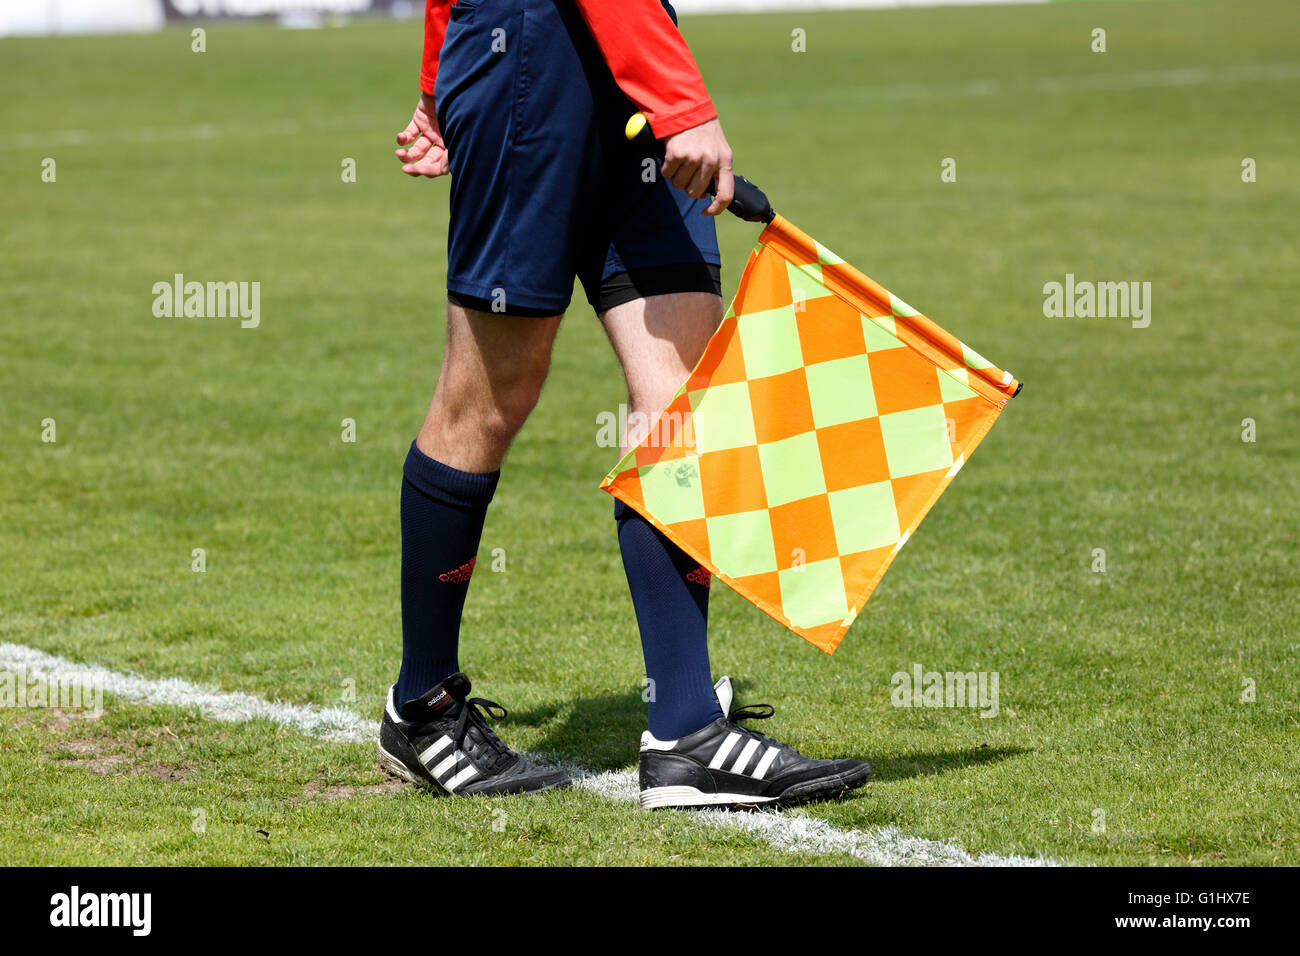 sports, football, symbolism, assistant referee, linesman with flag at the touchline - Stock Image